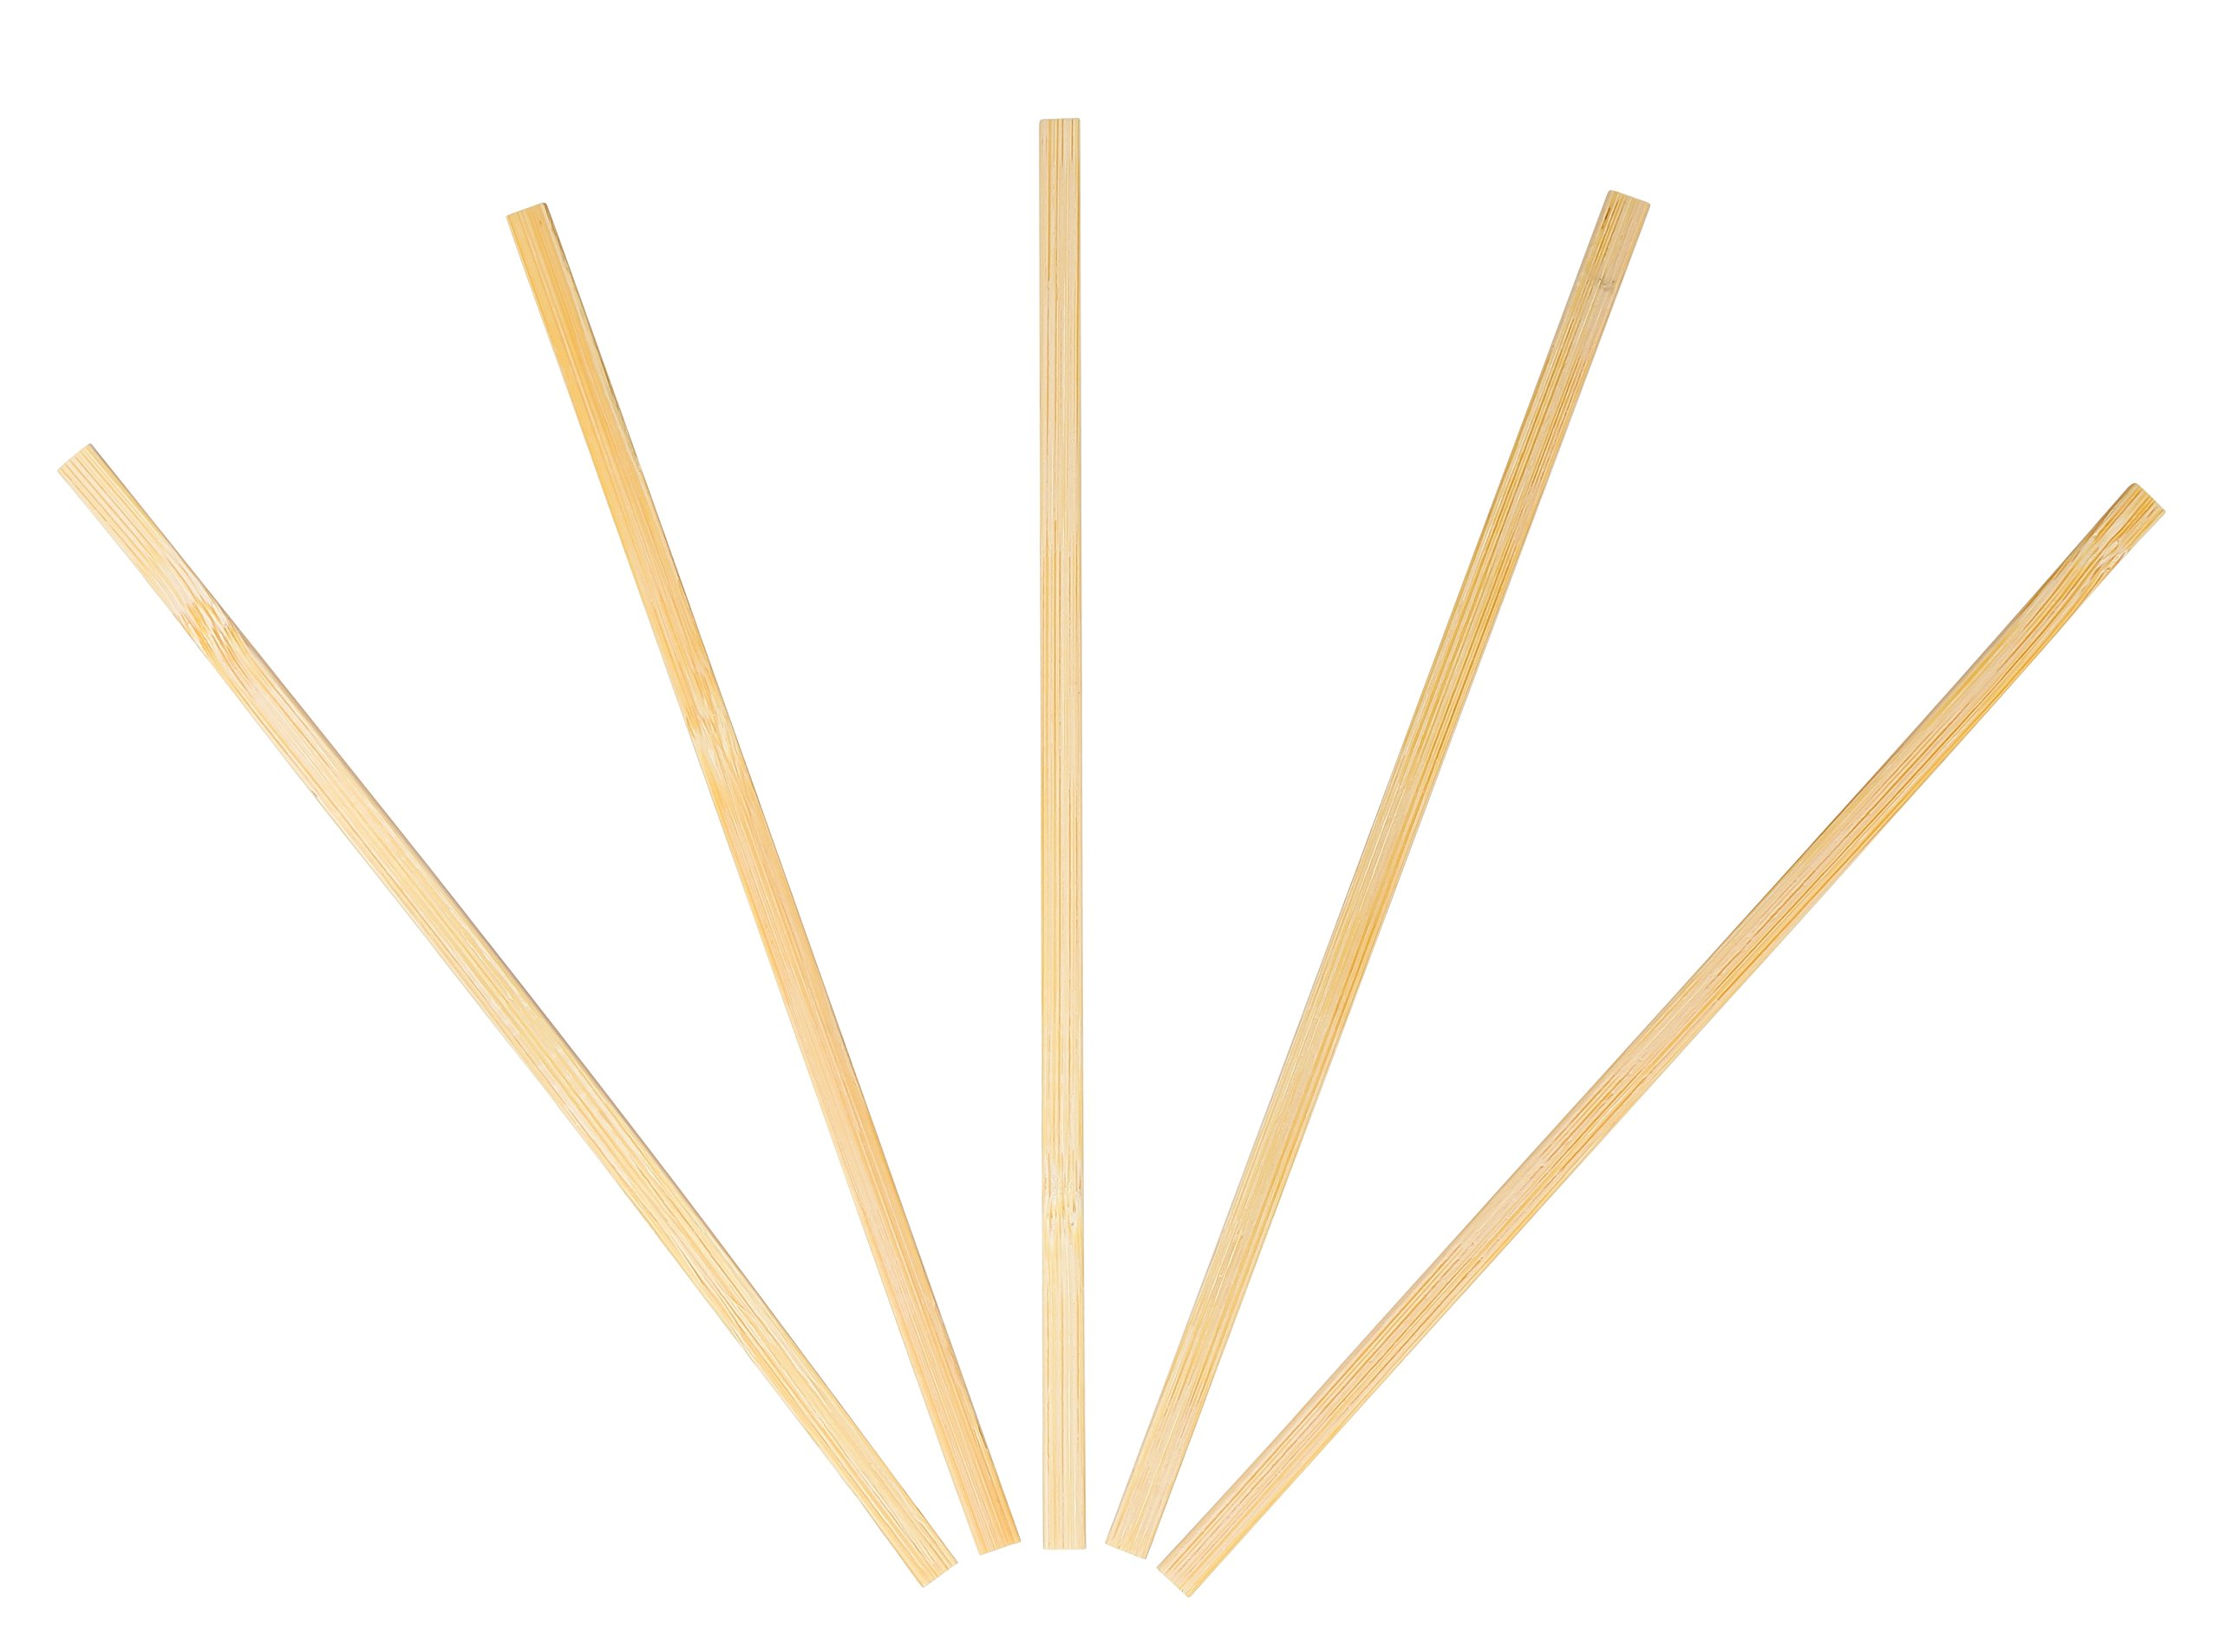 KingSeal Bamboo Wood Coffee Beverage Stirrers, Square End - 7 Inches, 4 boxes of 500 each, 100% Renewable and Biodegradable, Stronger and Thicker Than Standard Wood by KingSeal (Image #3)